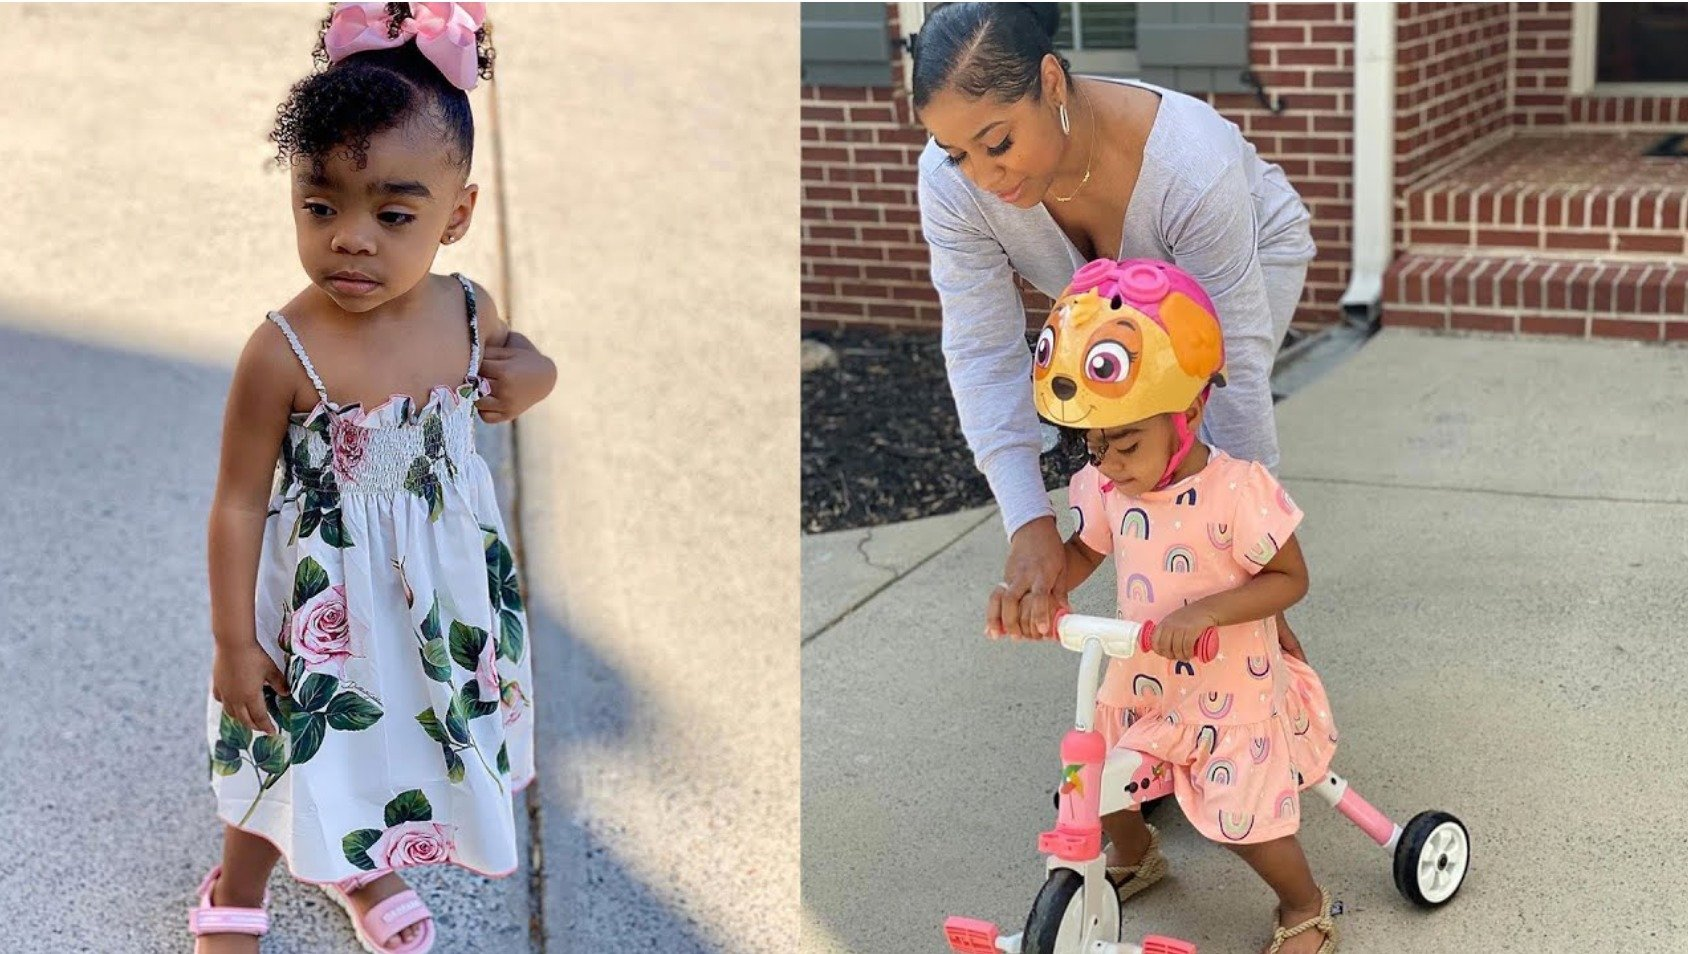 Toya Johnson Shares New Clips Featuring Baby Reign Rushing And Makes Fans Smile - Watch Them Here